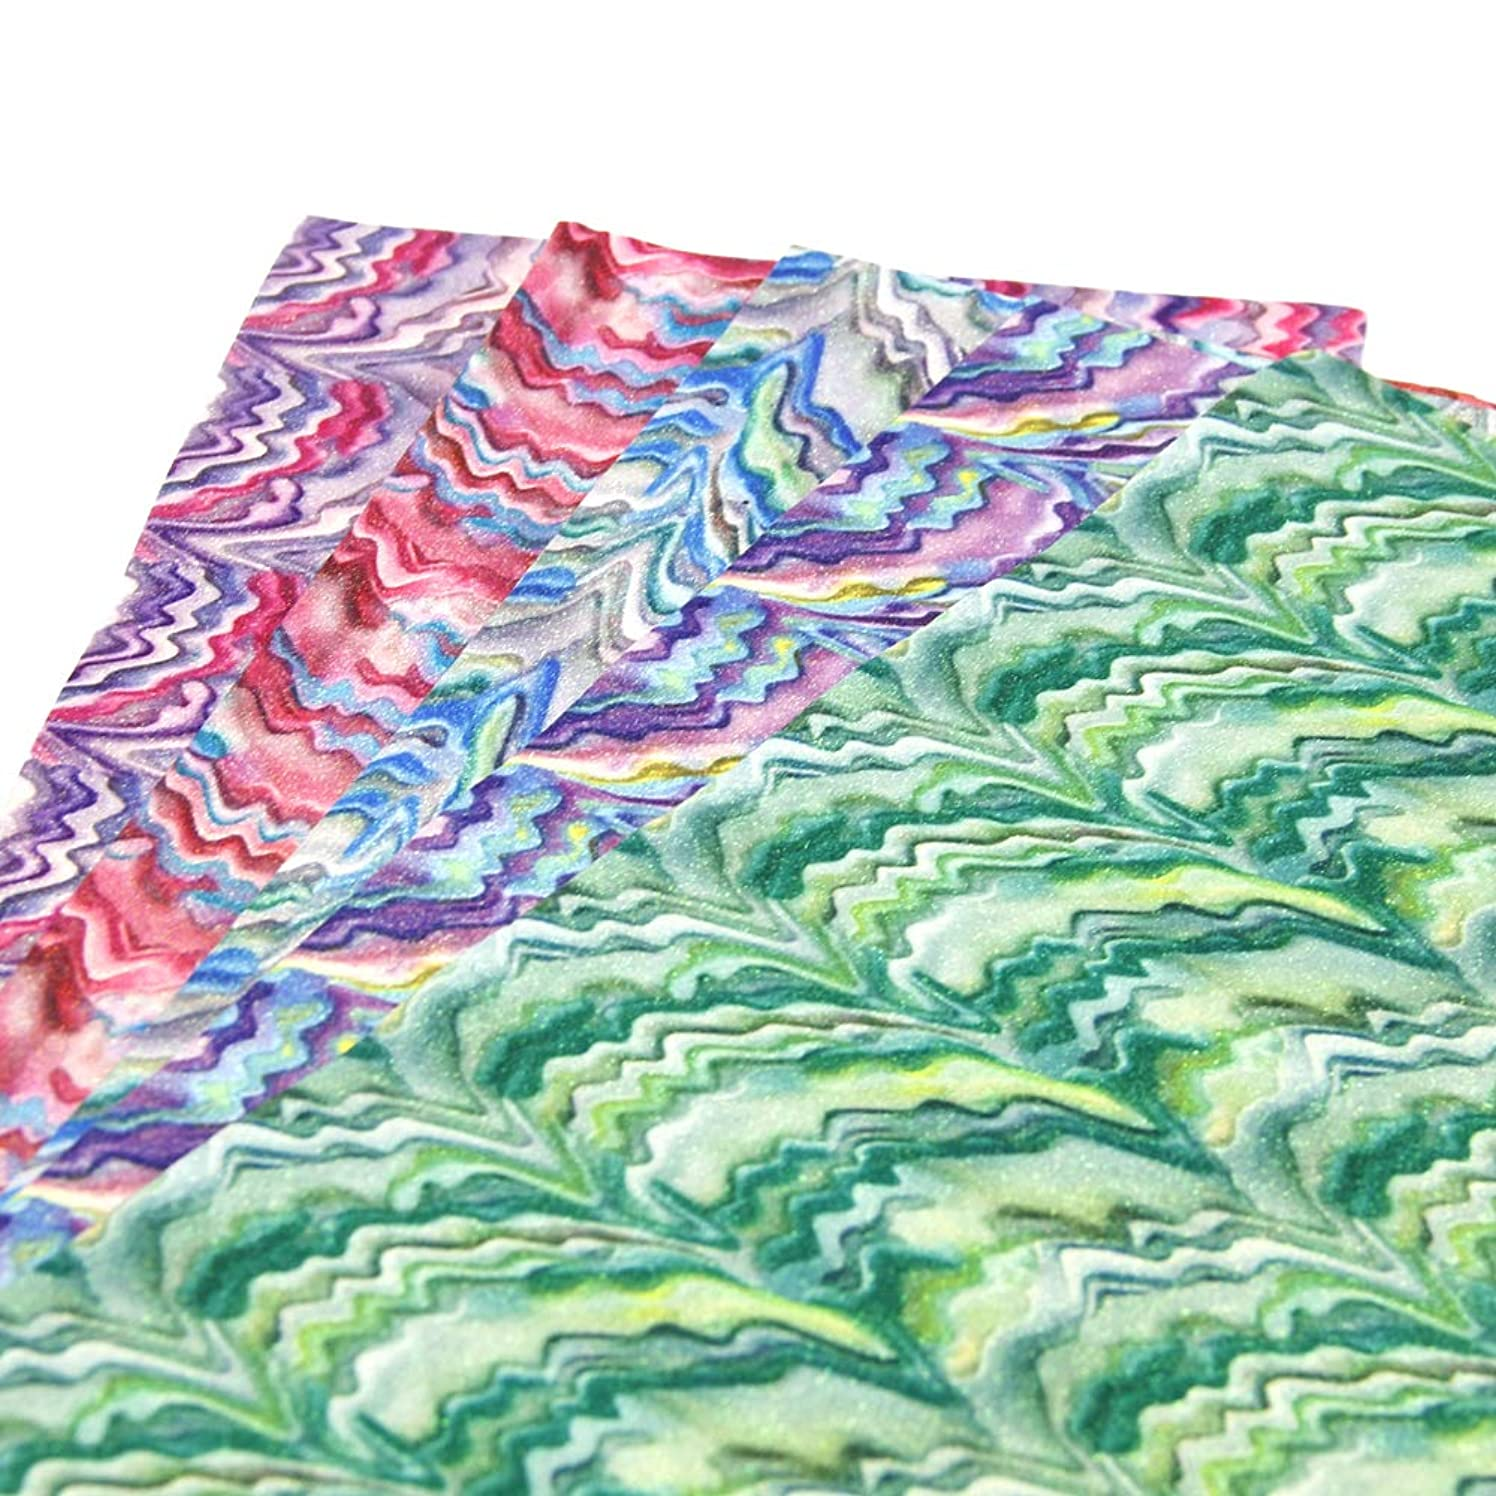 David Angie Glitter Rainbow Chevron Synthetic Leather Sheets 5 Pcs 8